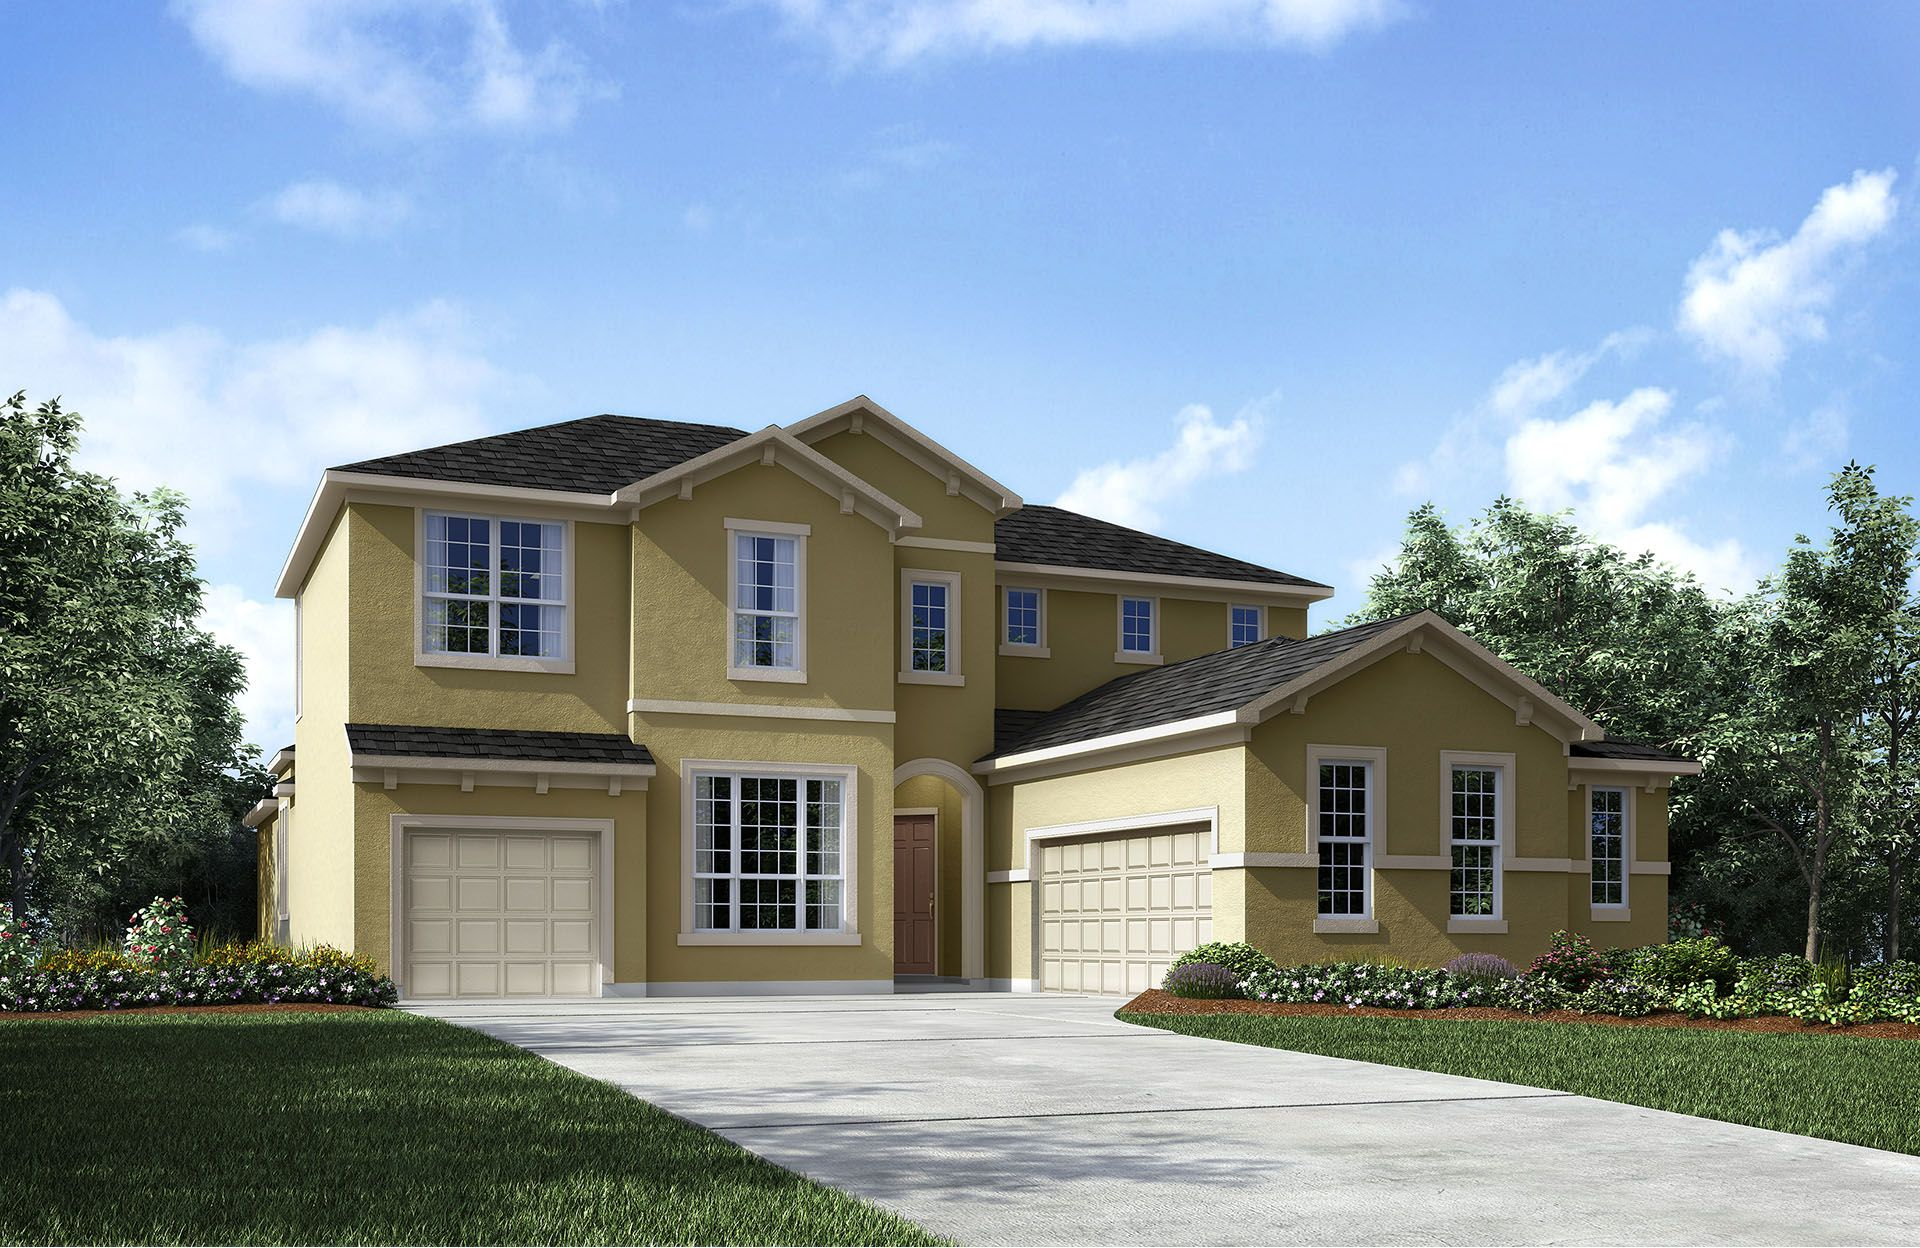 Single Family for Sale at Jacksonville Offsite - Andros Jacksonville, Florida 32257 United States